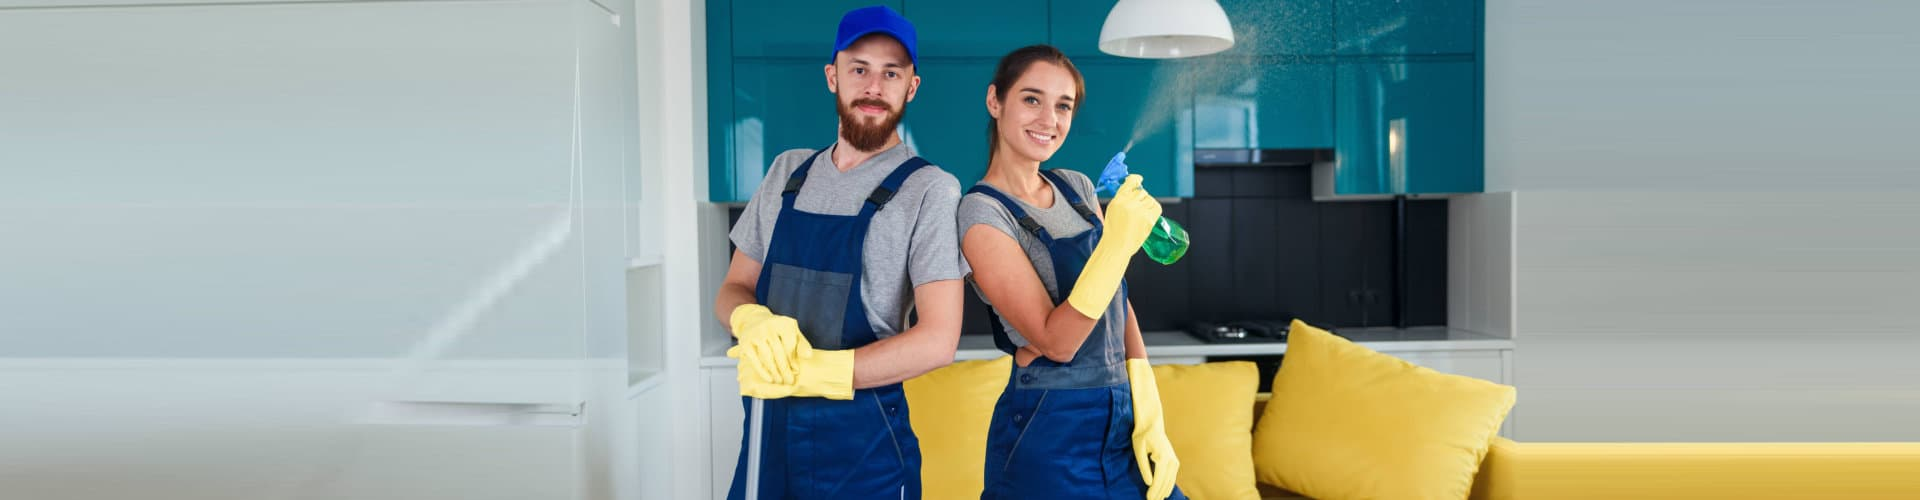 happy male and female cleaners